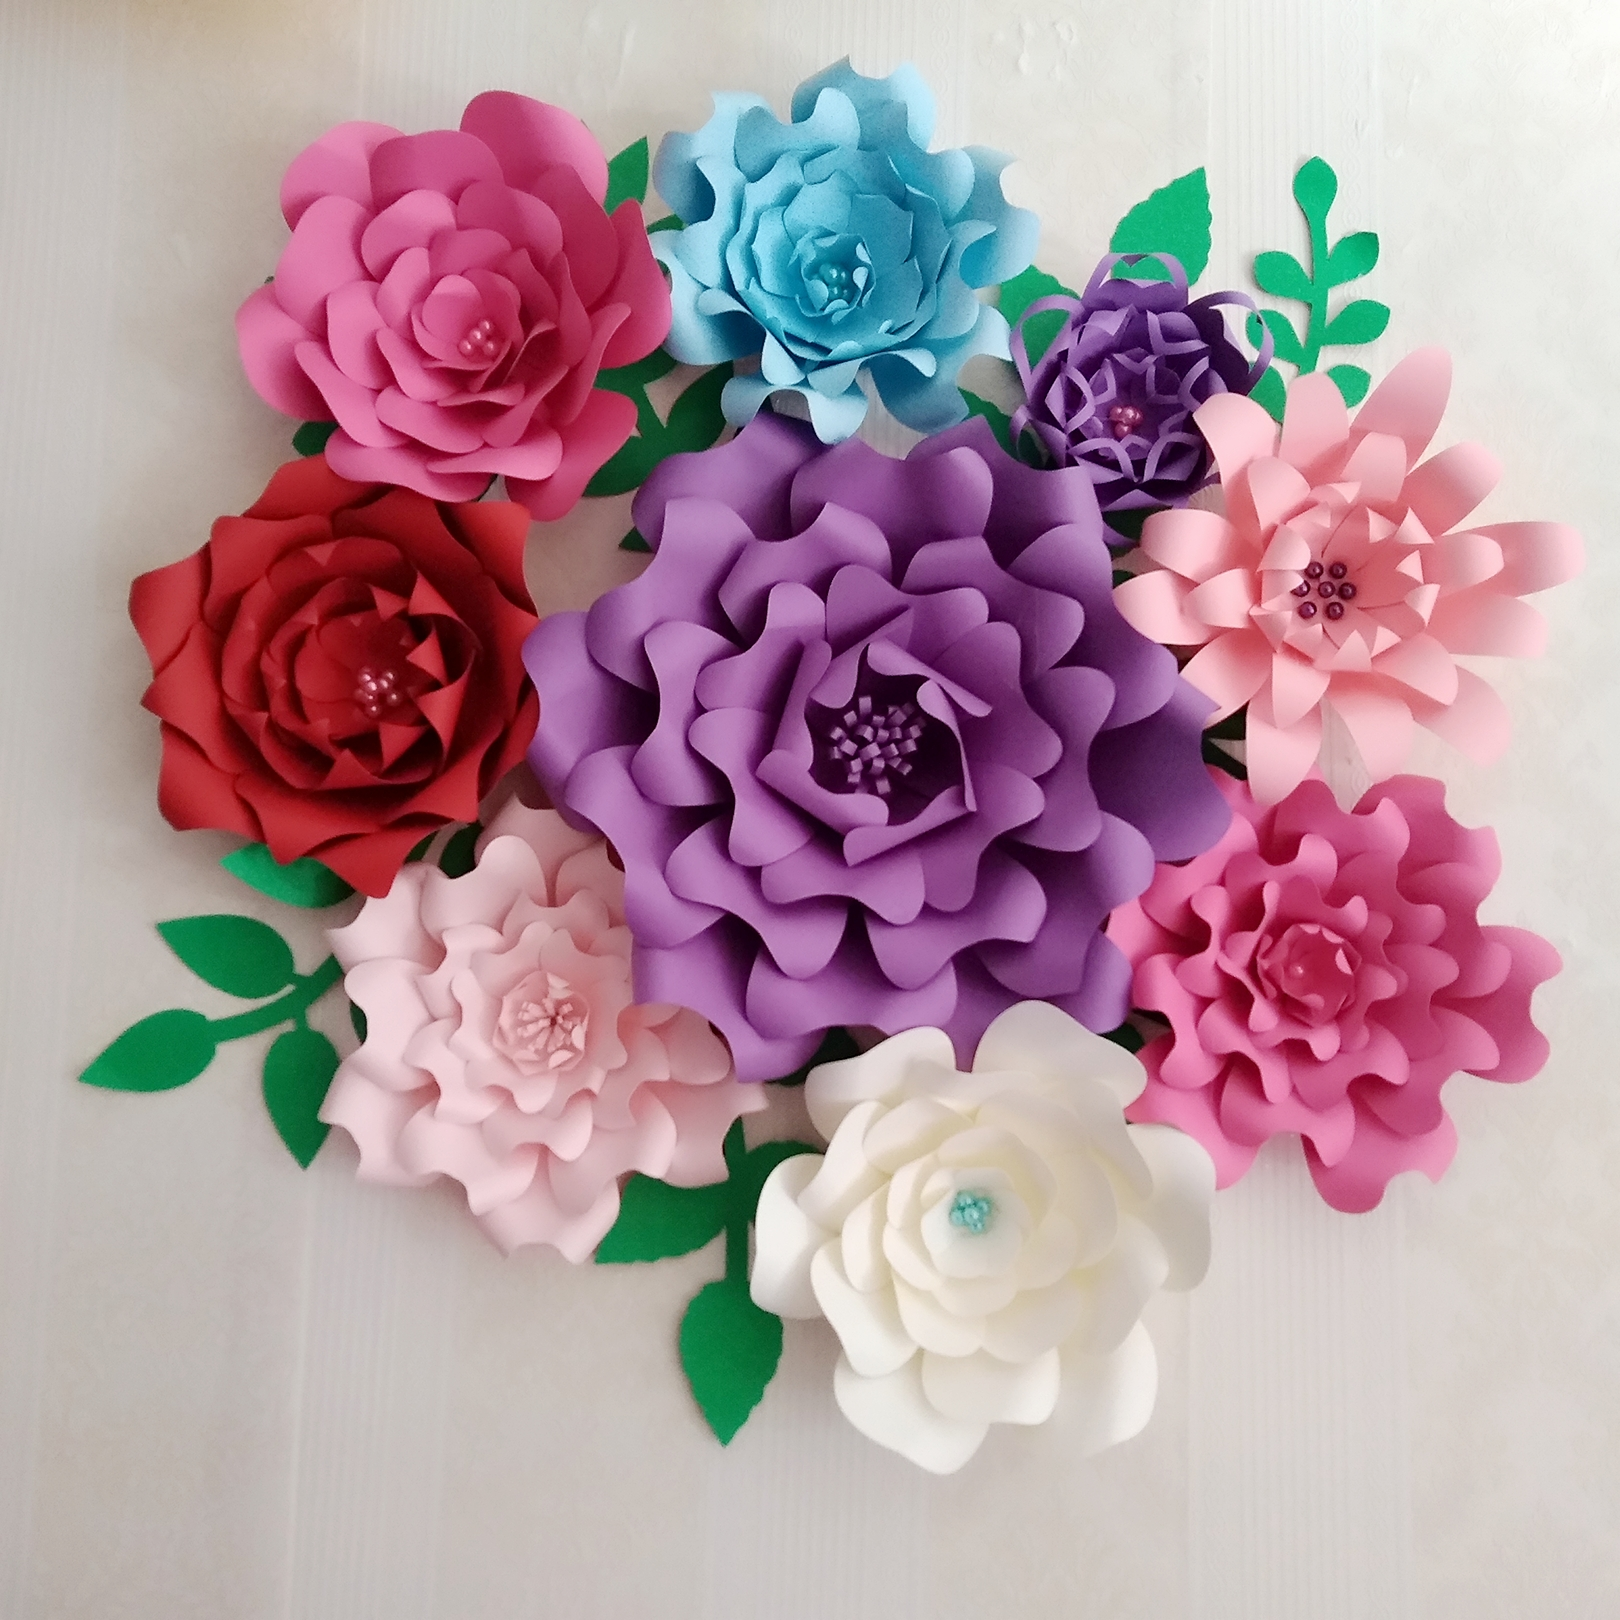 Aliexpress Buy 2018 Creative Giant Paper Flowers 9pcs Leaves